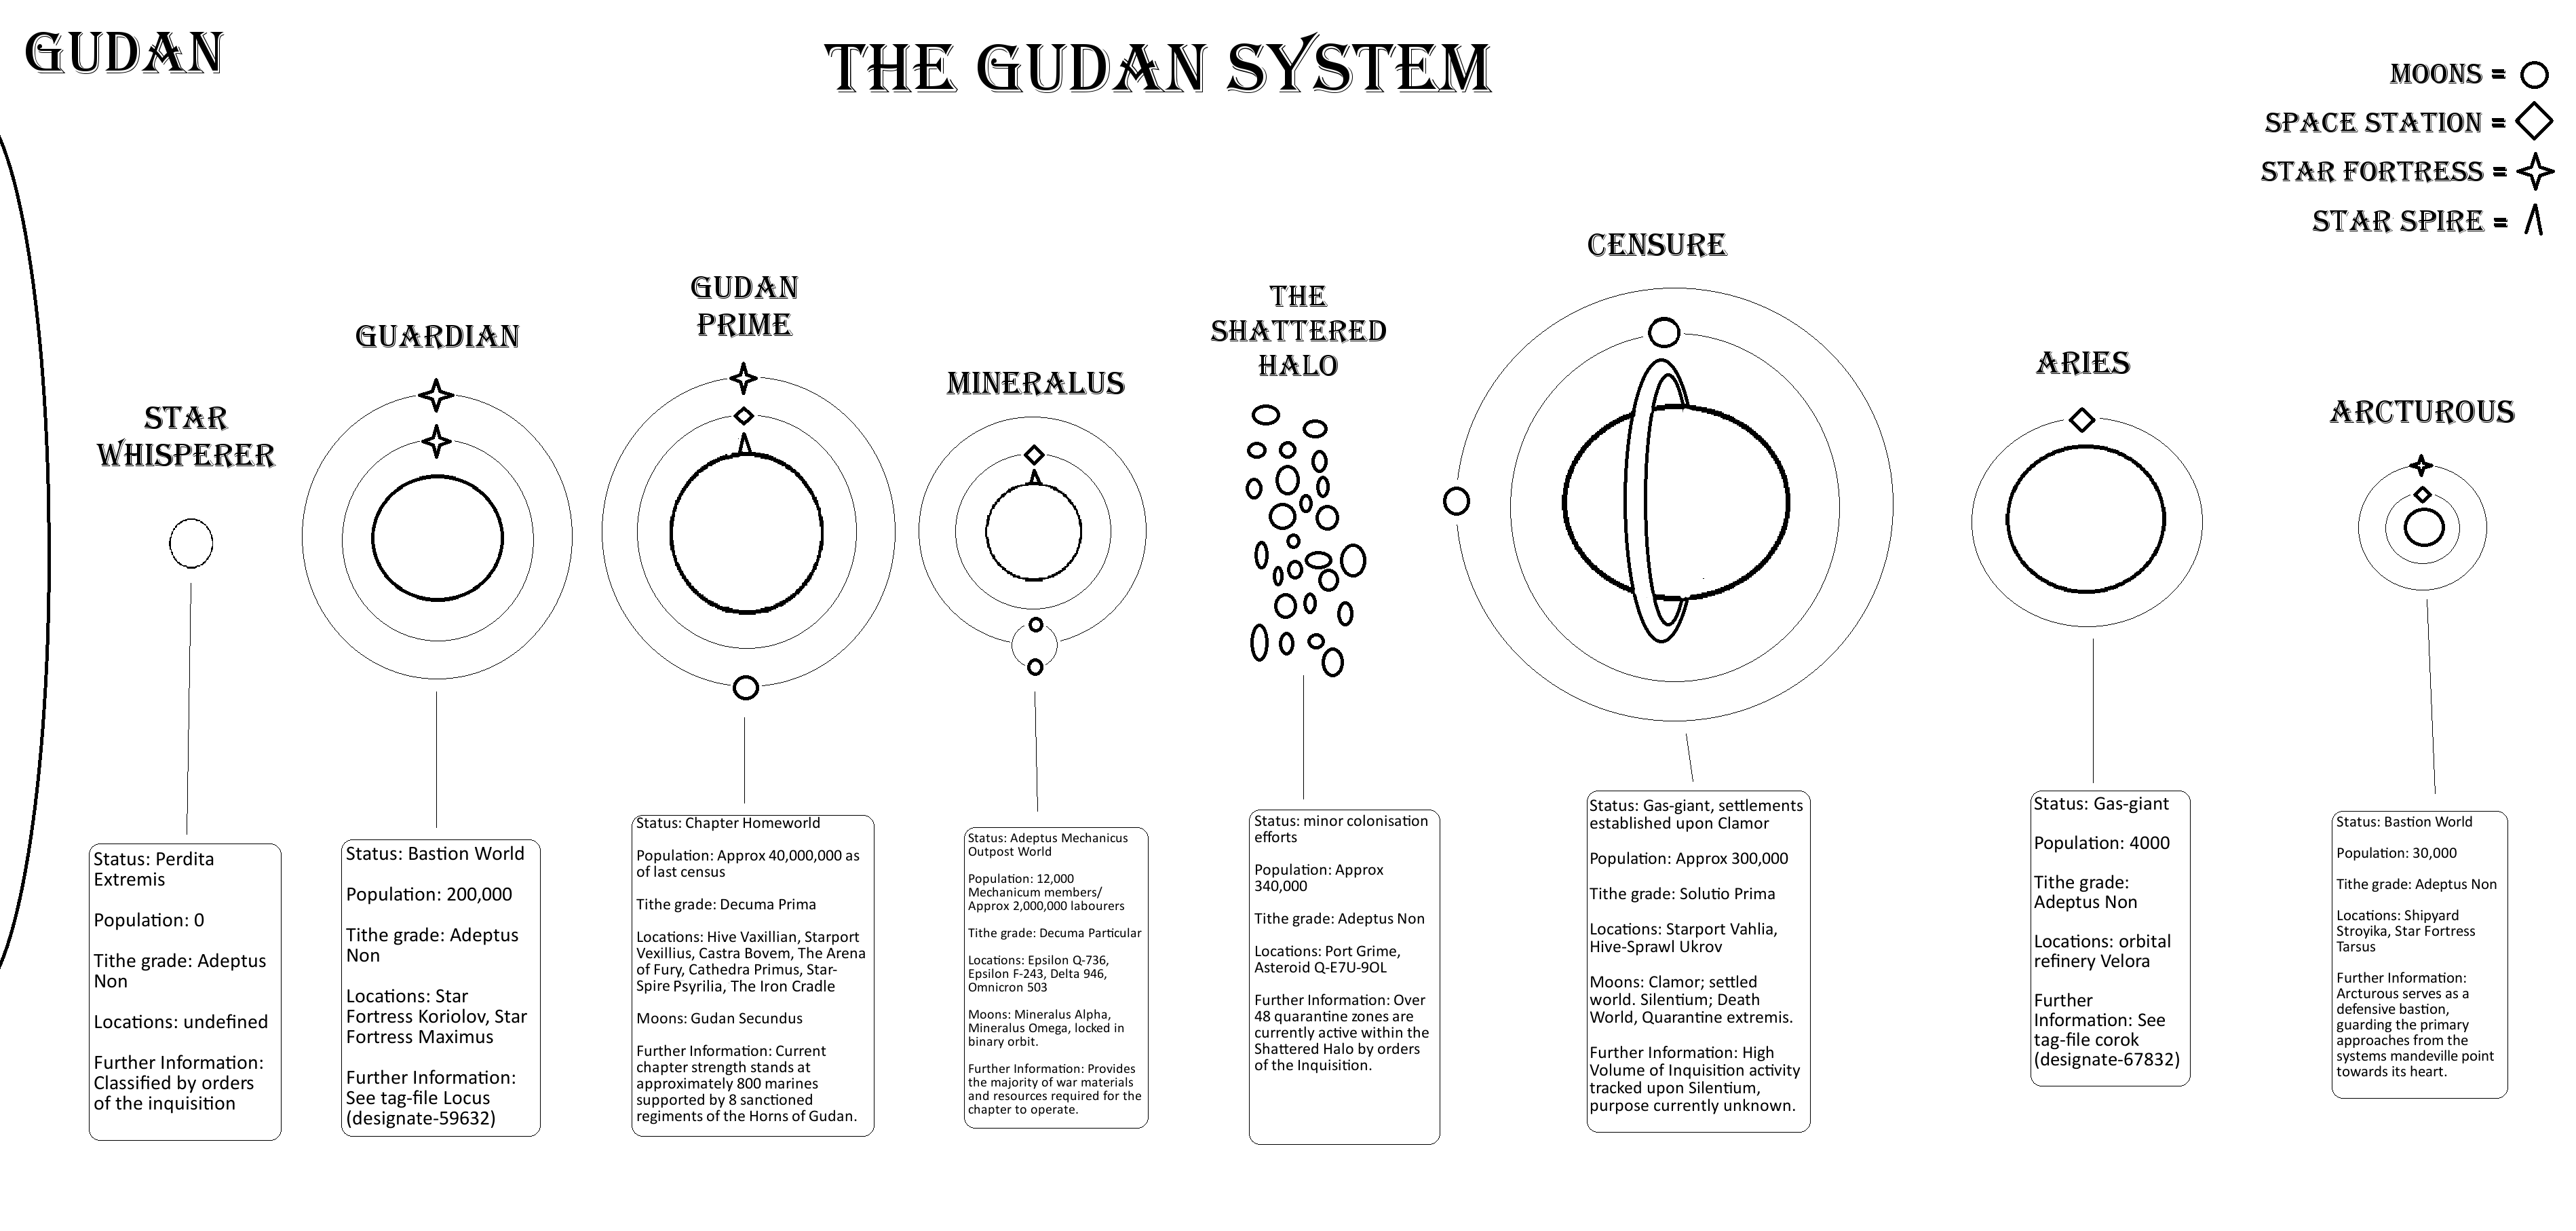 The Gudan System.png